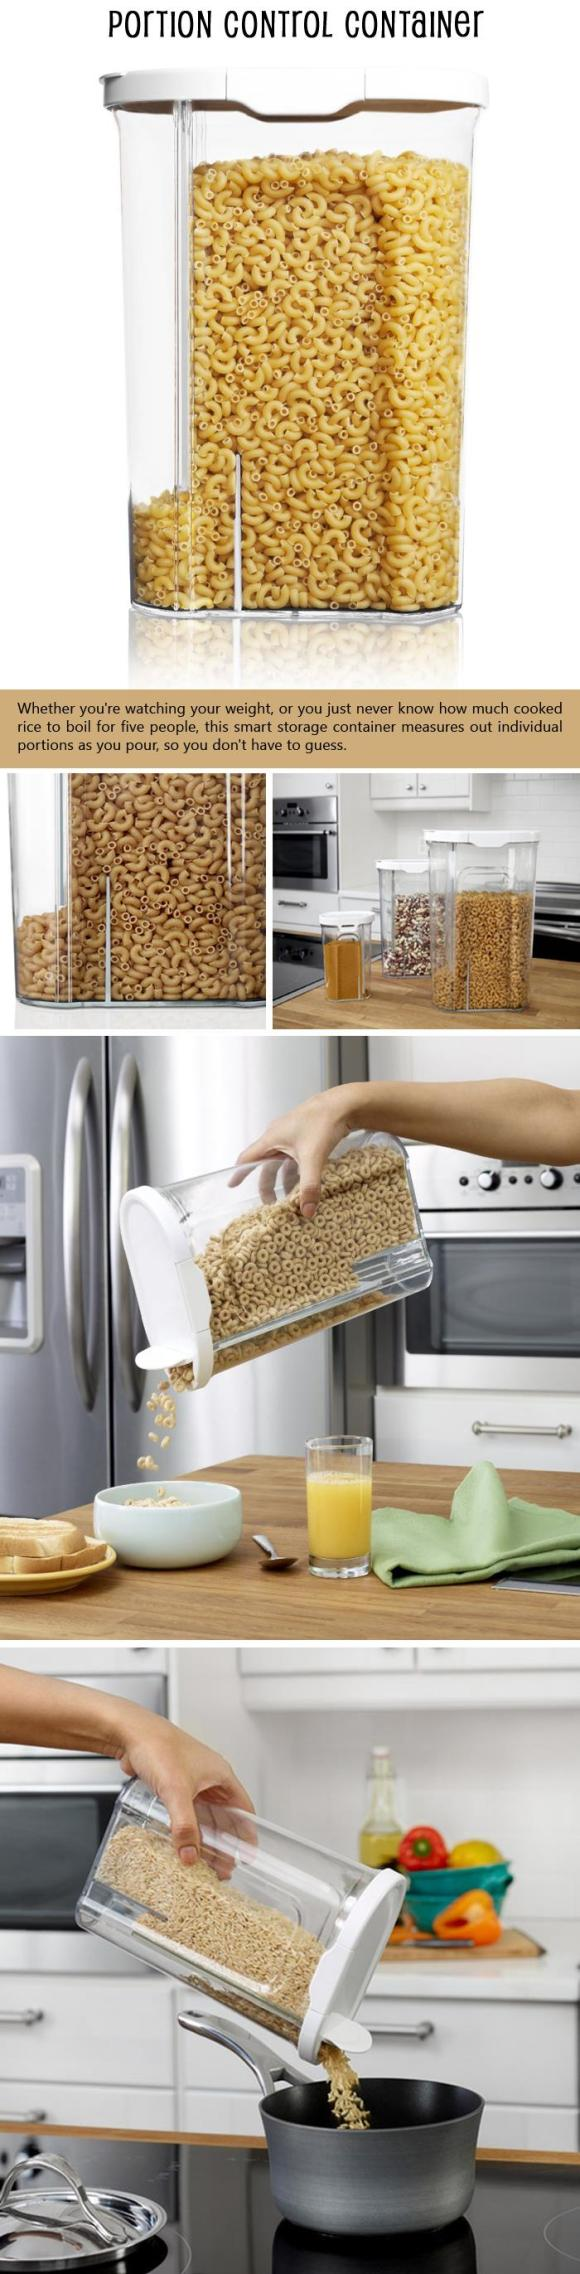 Portion Control Container